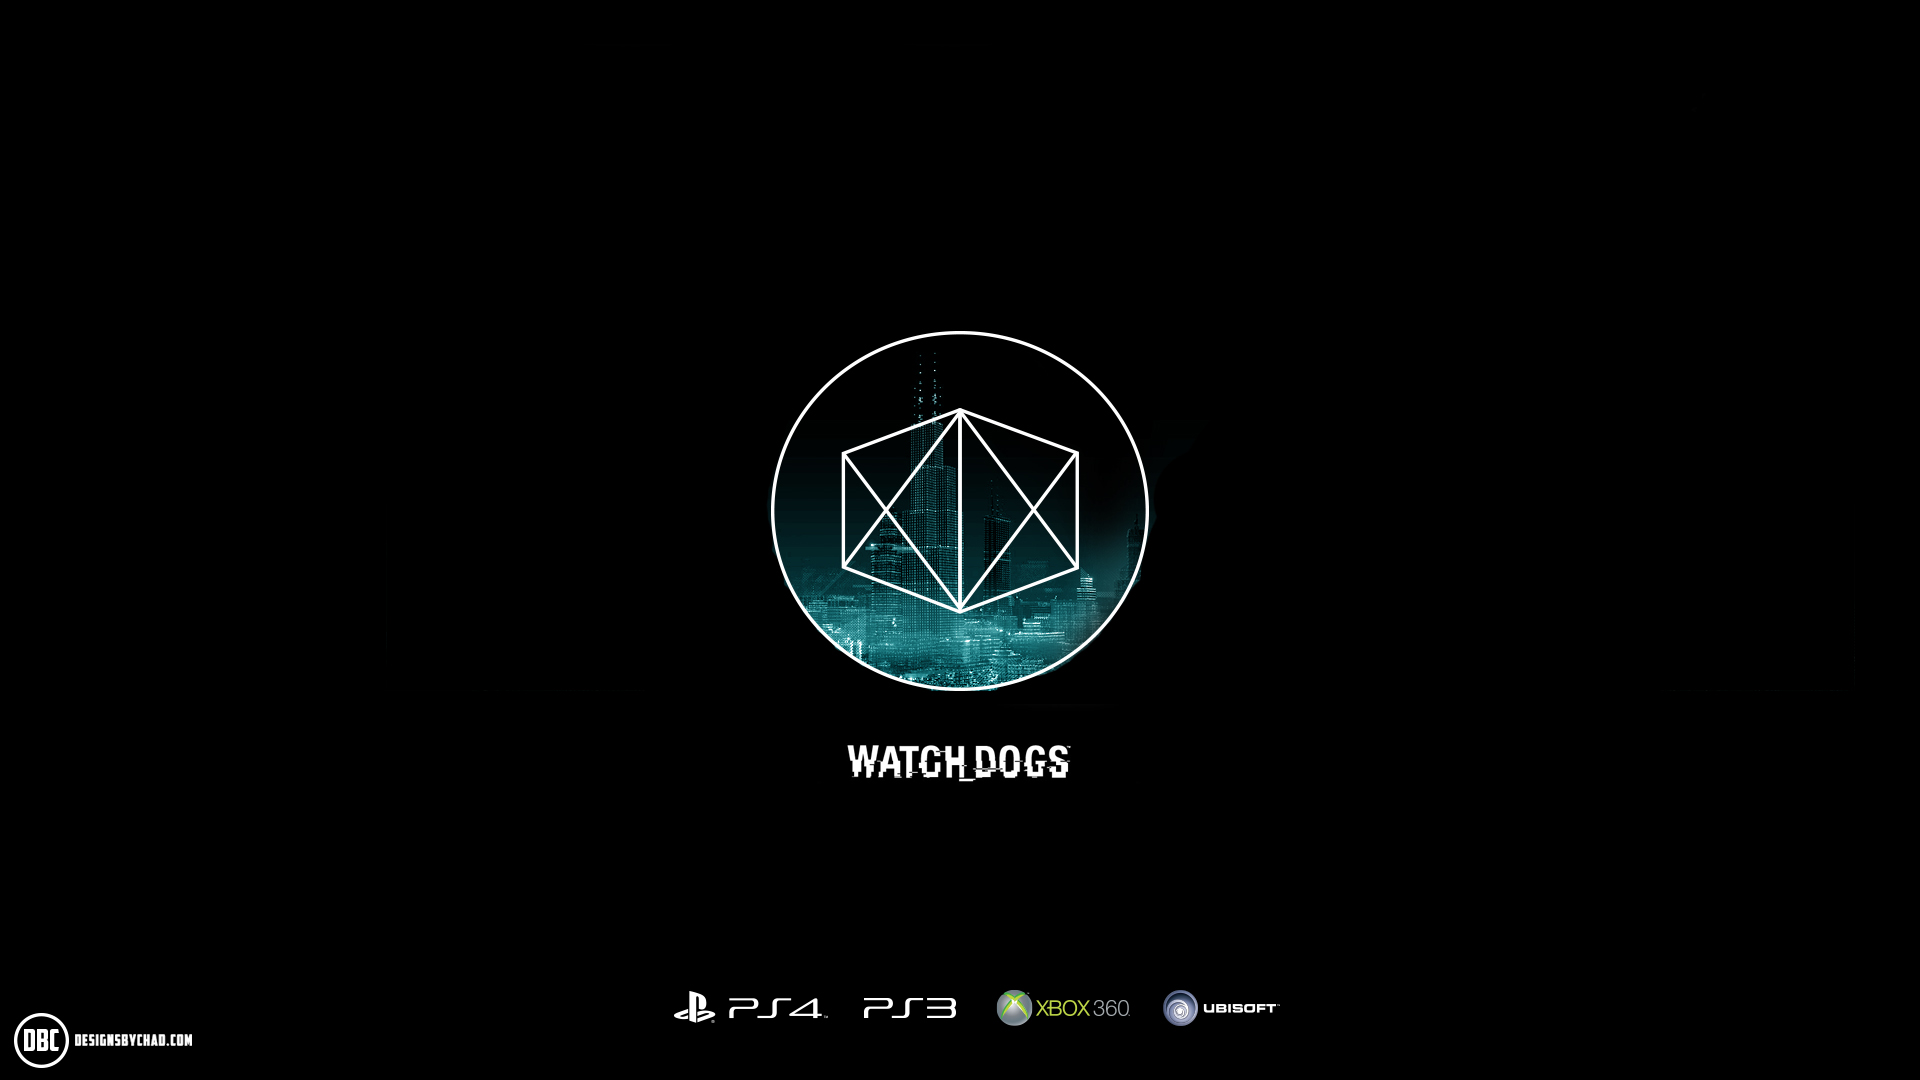 Watch Dogs Hacking Wallpaper - WallpaperSafari